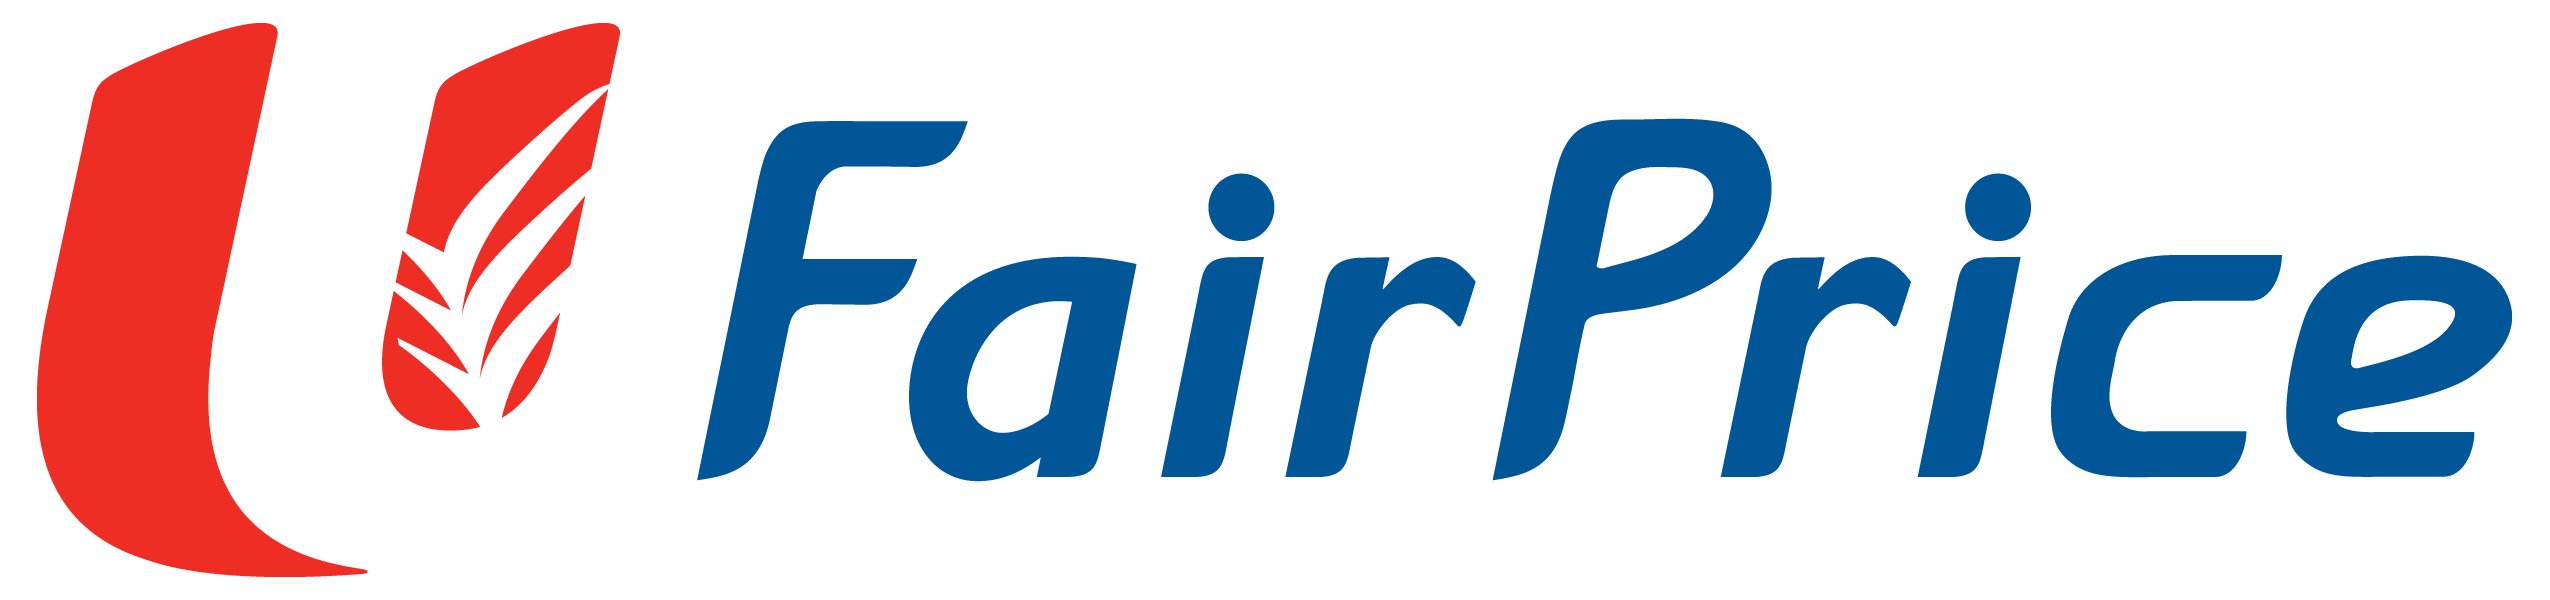 ZOOM LINK - Fairprice Logo PNG